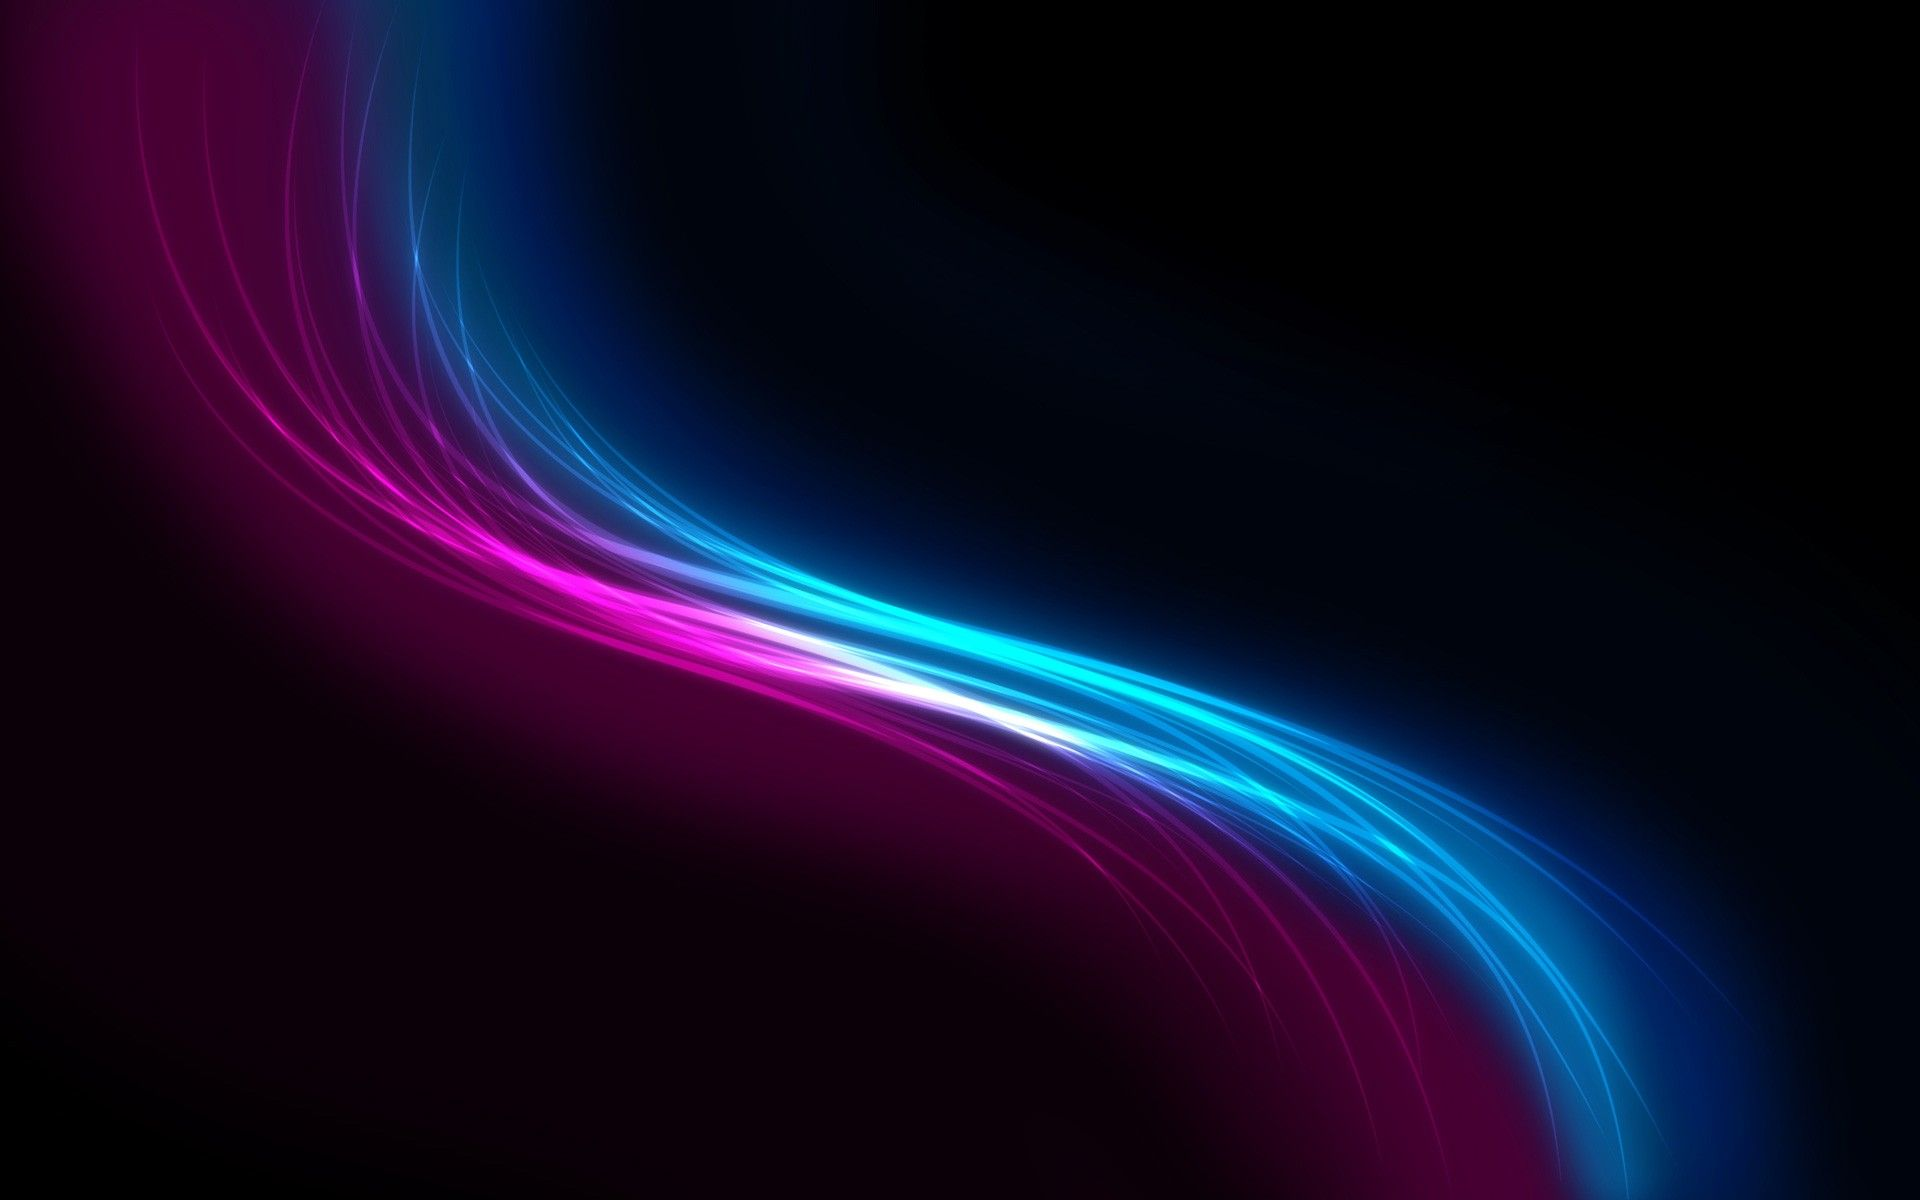 Colorful Abstract Wallpaper Desktop Background D